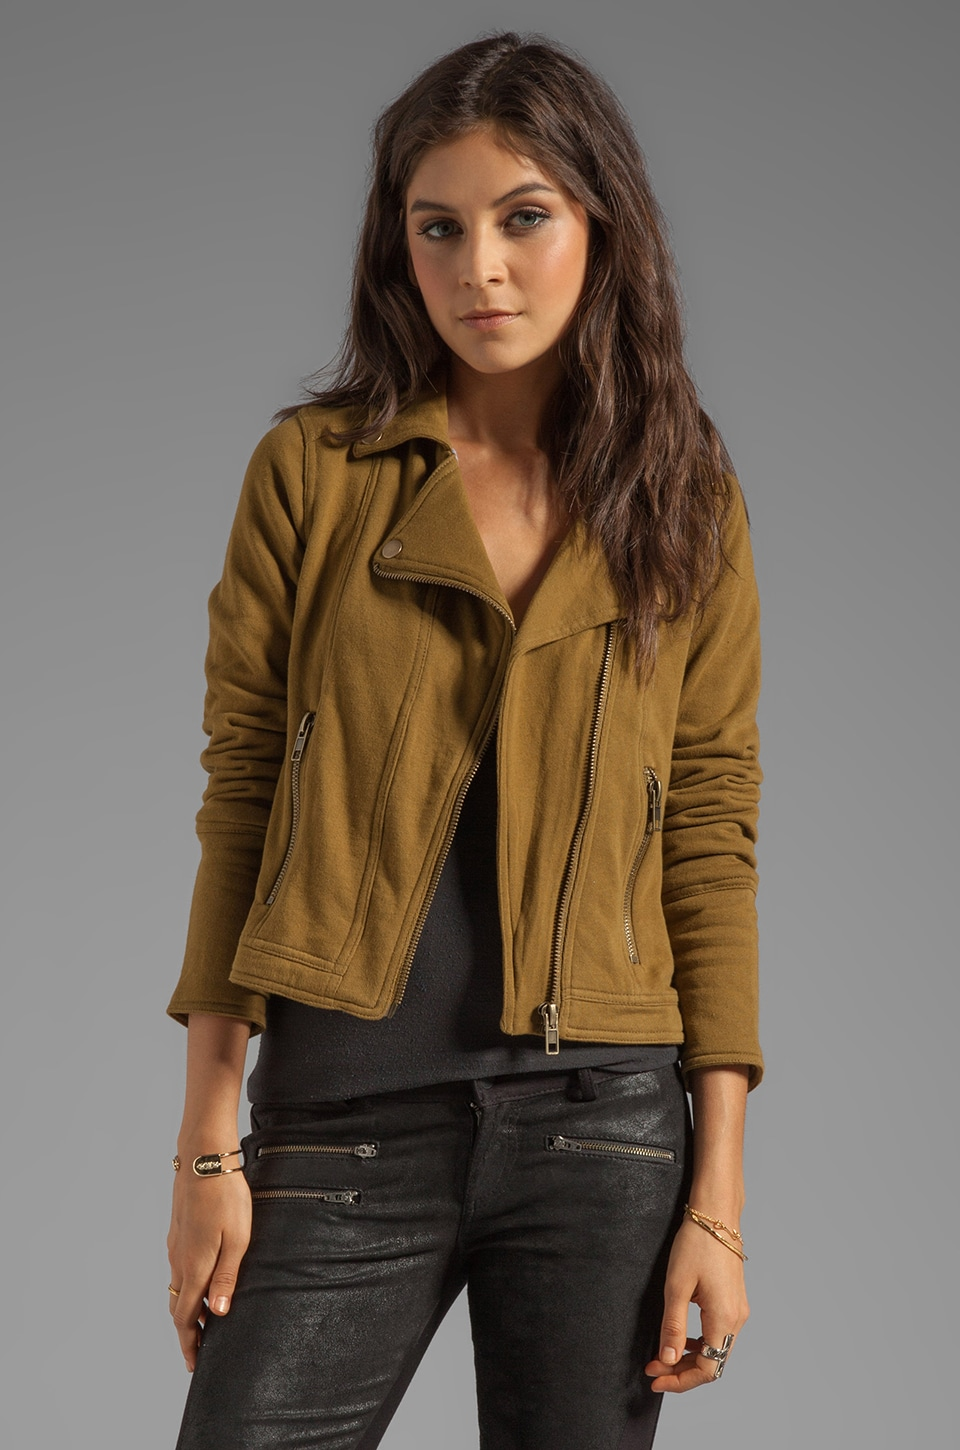 Chaser Fleece Moto Jacket in Caper